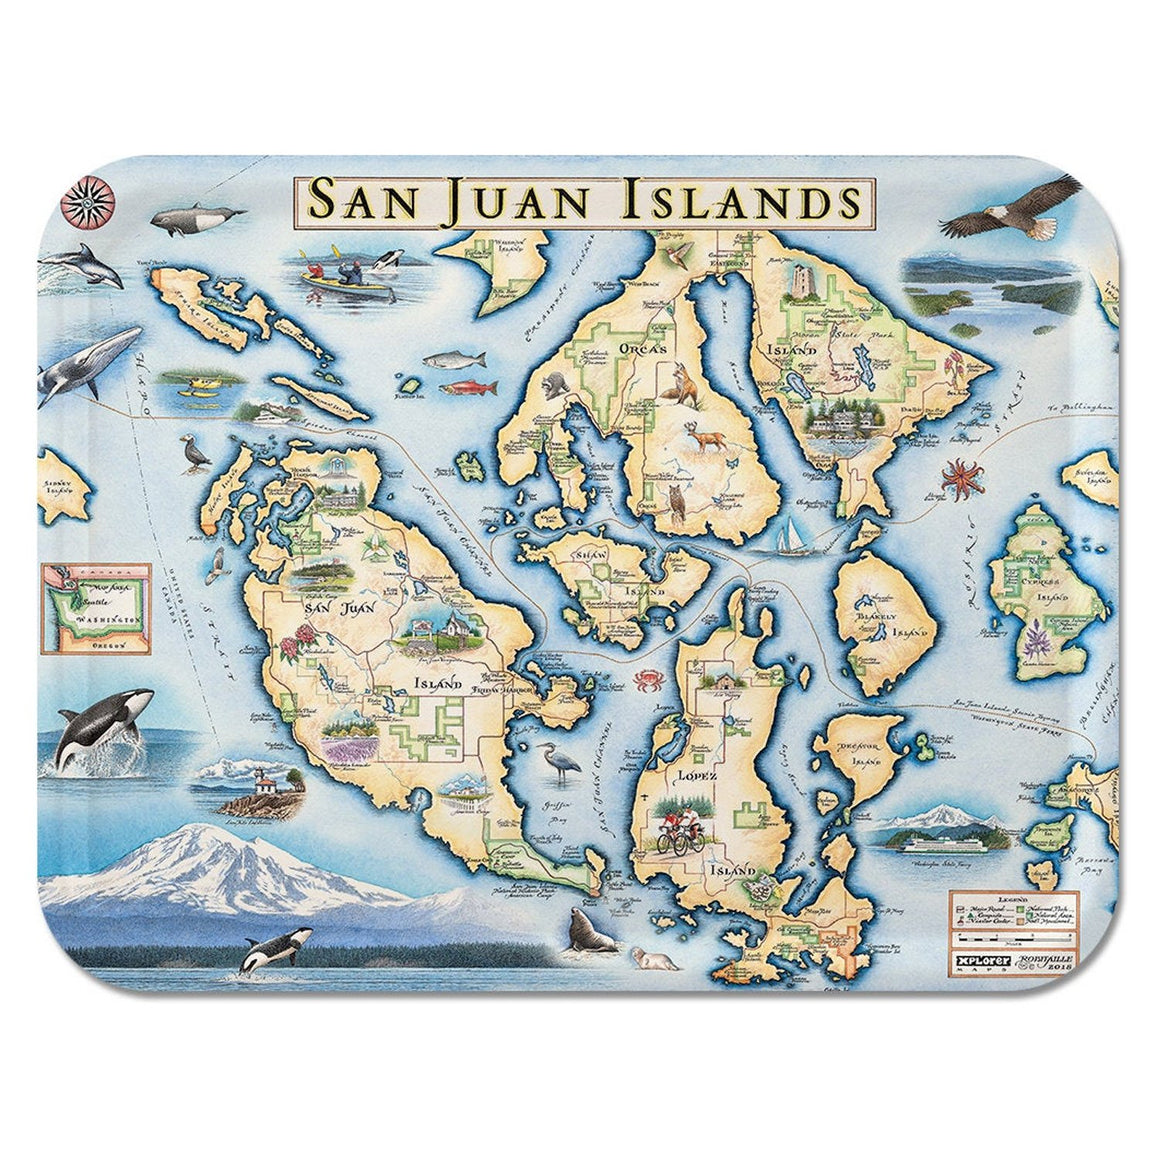 San Juan Islands Map Serving Tray